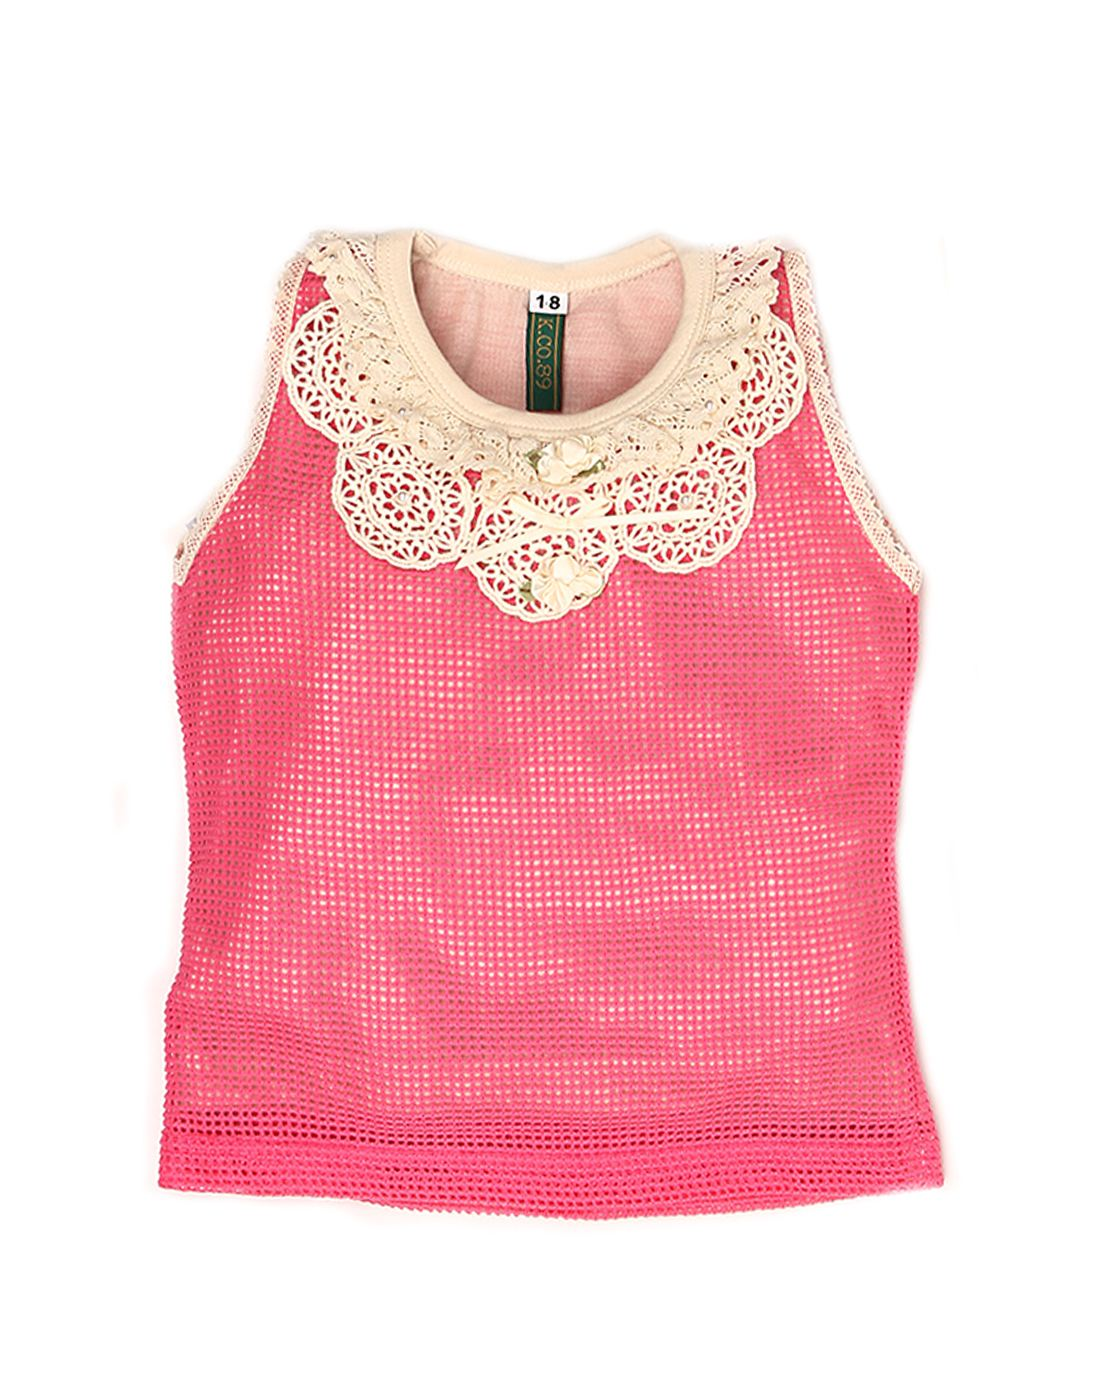 K.C.O 89 Girls Party Wear Solid Sleeveless Top